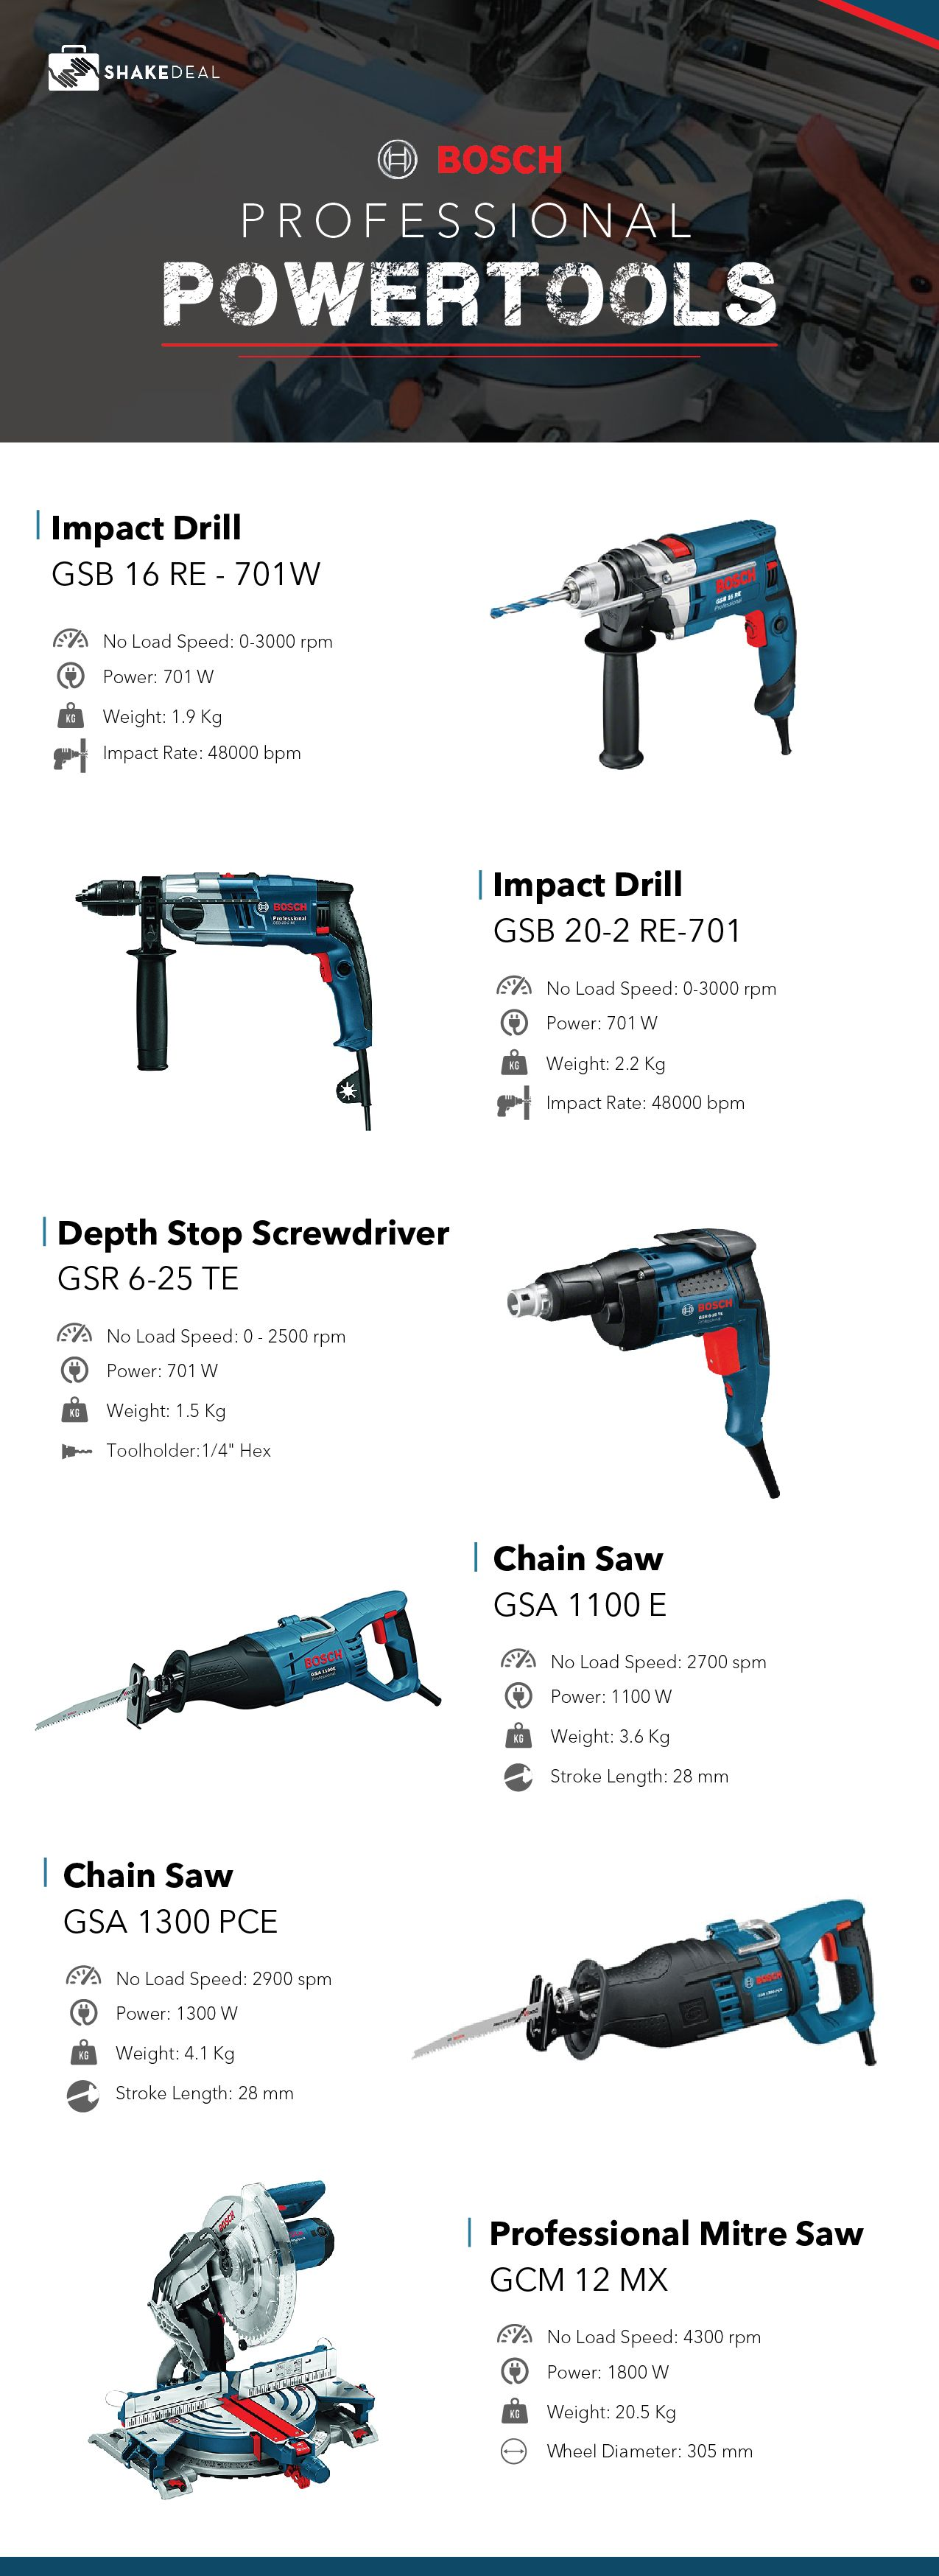 Bosch Impact Drill Gsb 16 Re 701w Highly Efficient Impact Drill Cordless Impact Drill Drill Power Drills